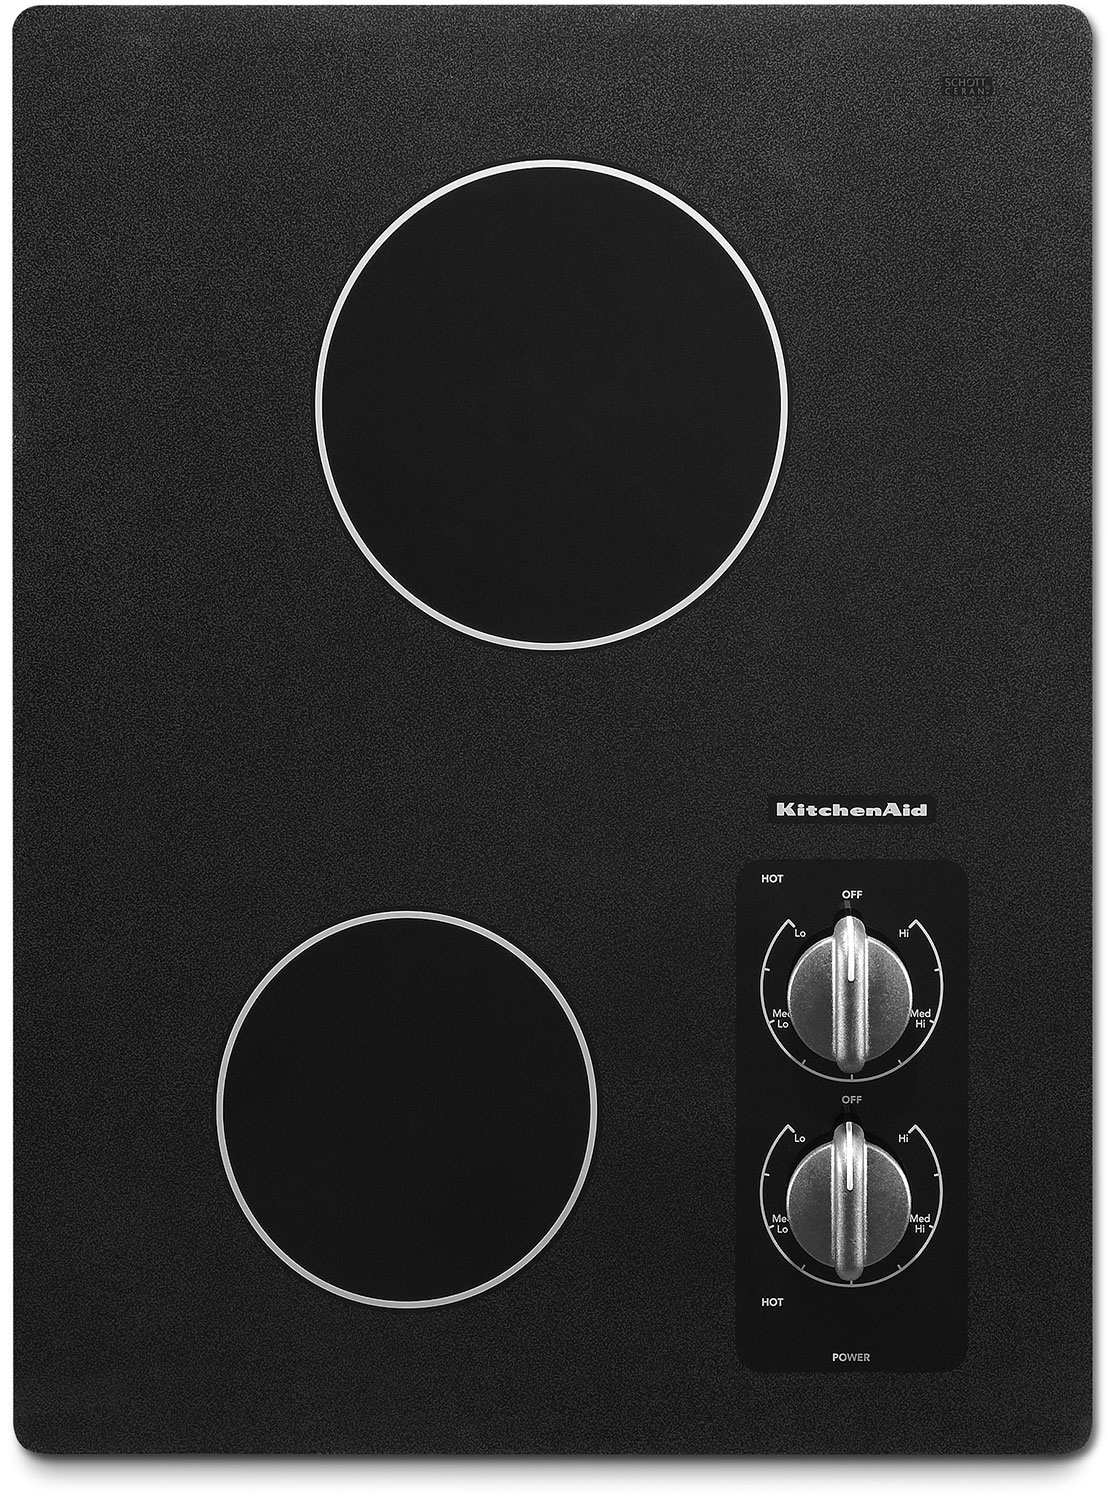 "KitchenAid Black Stainless Steel 15"" Electric Cooktop - KECC056RBL"